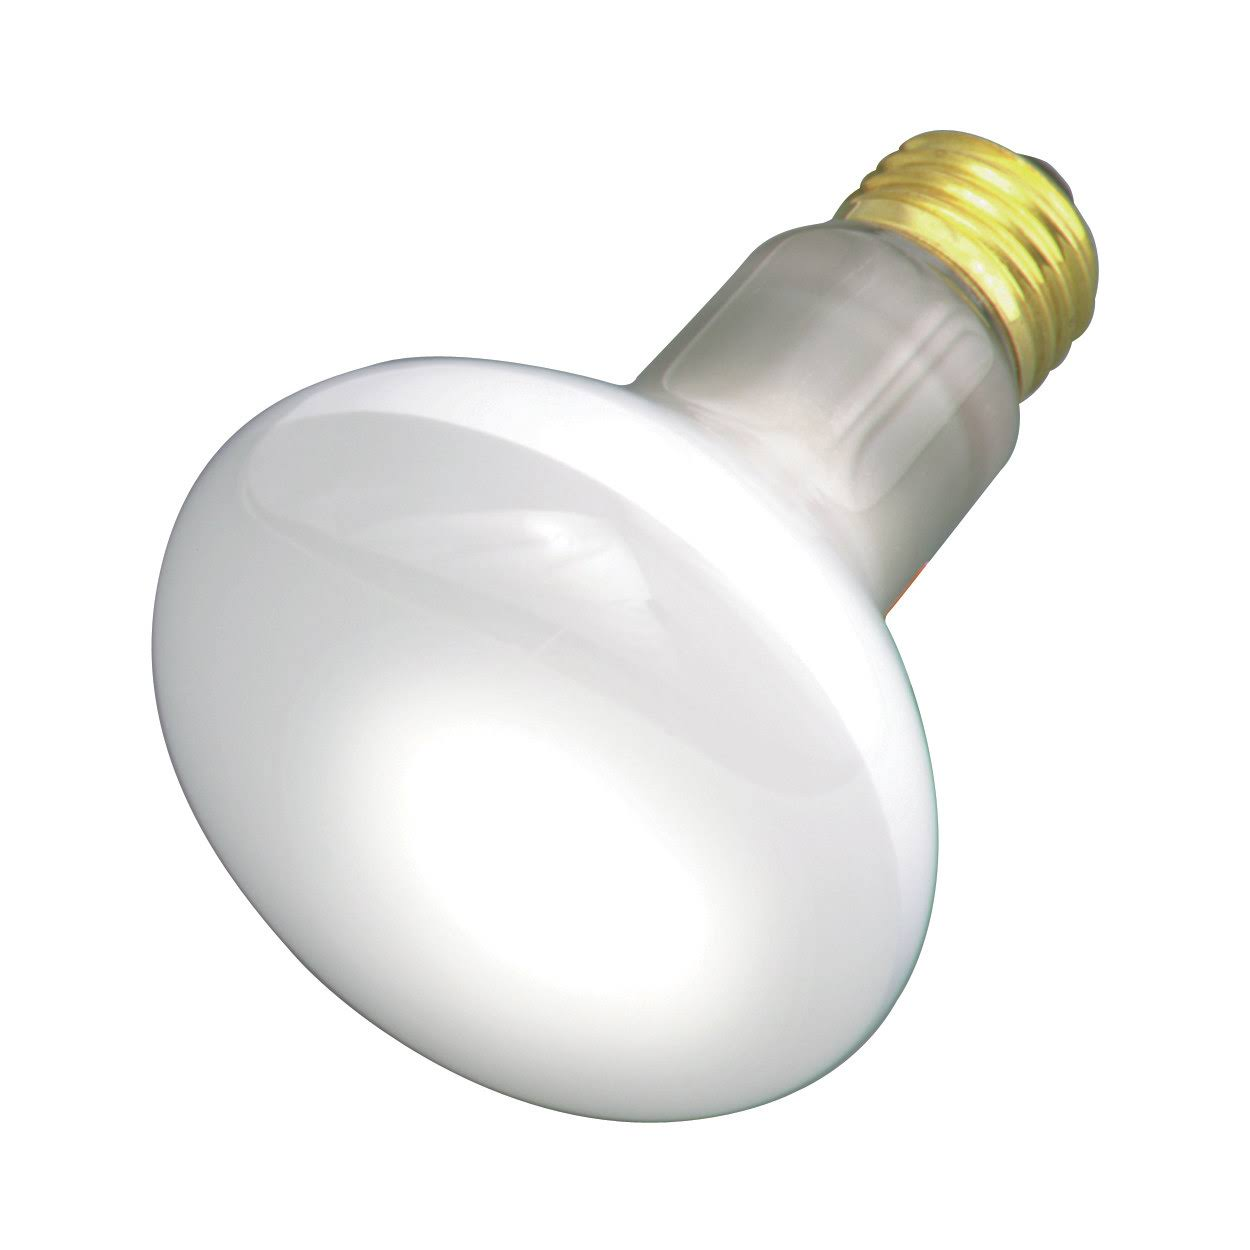 Satco Light Bulb - 120V, 45W, R20 Medium Base